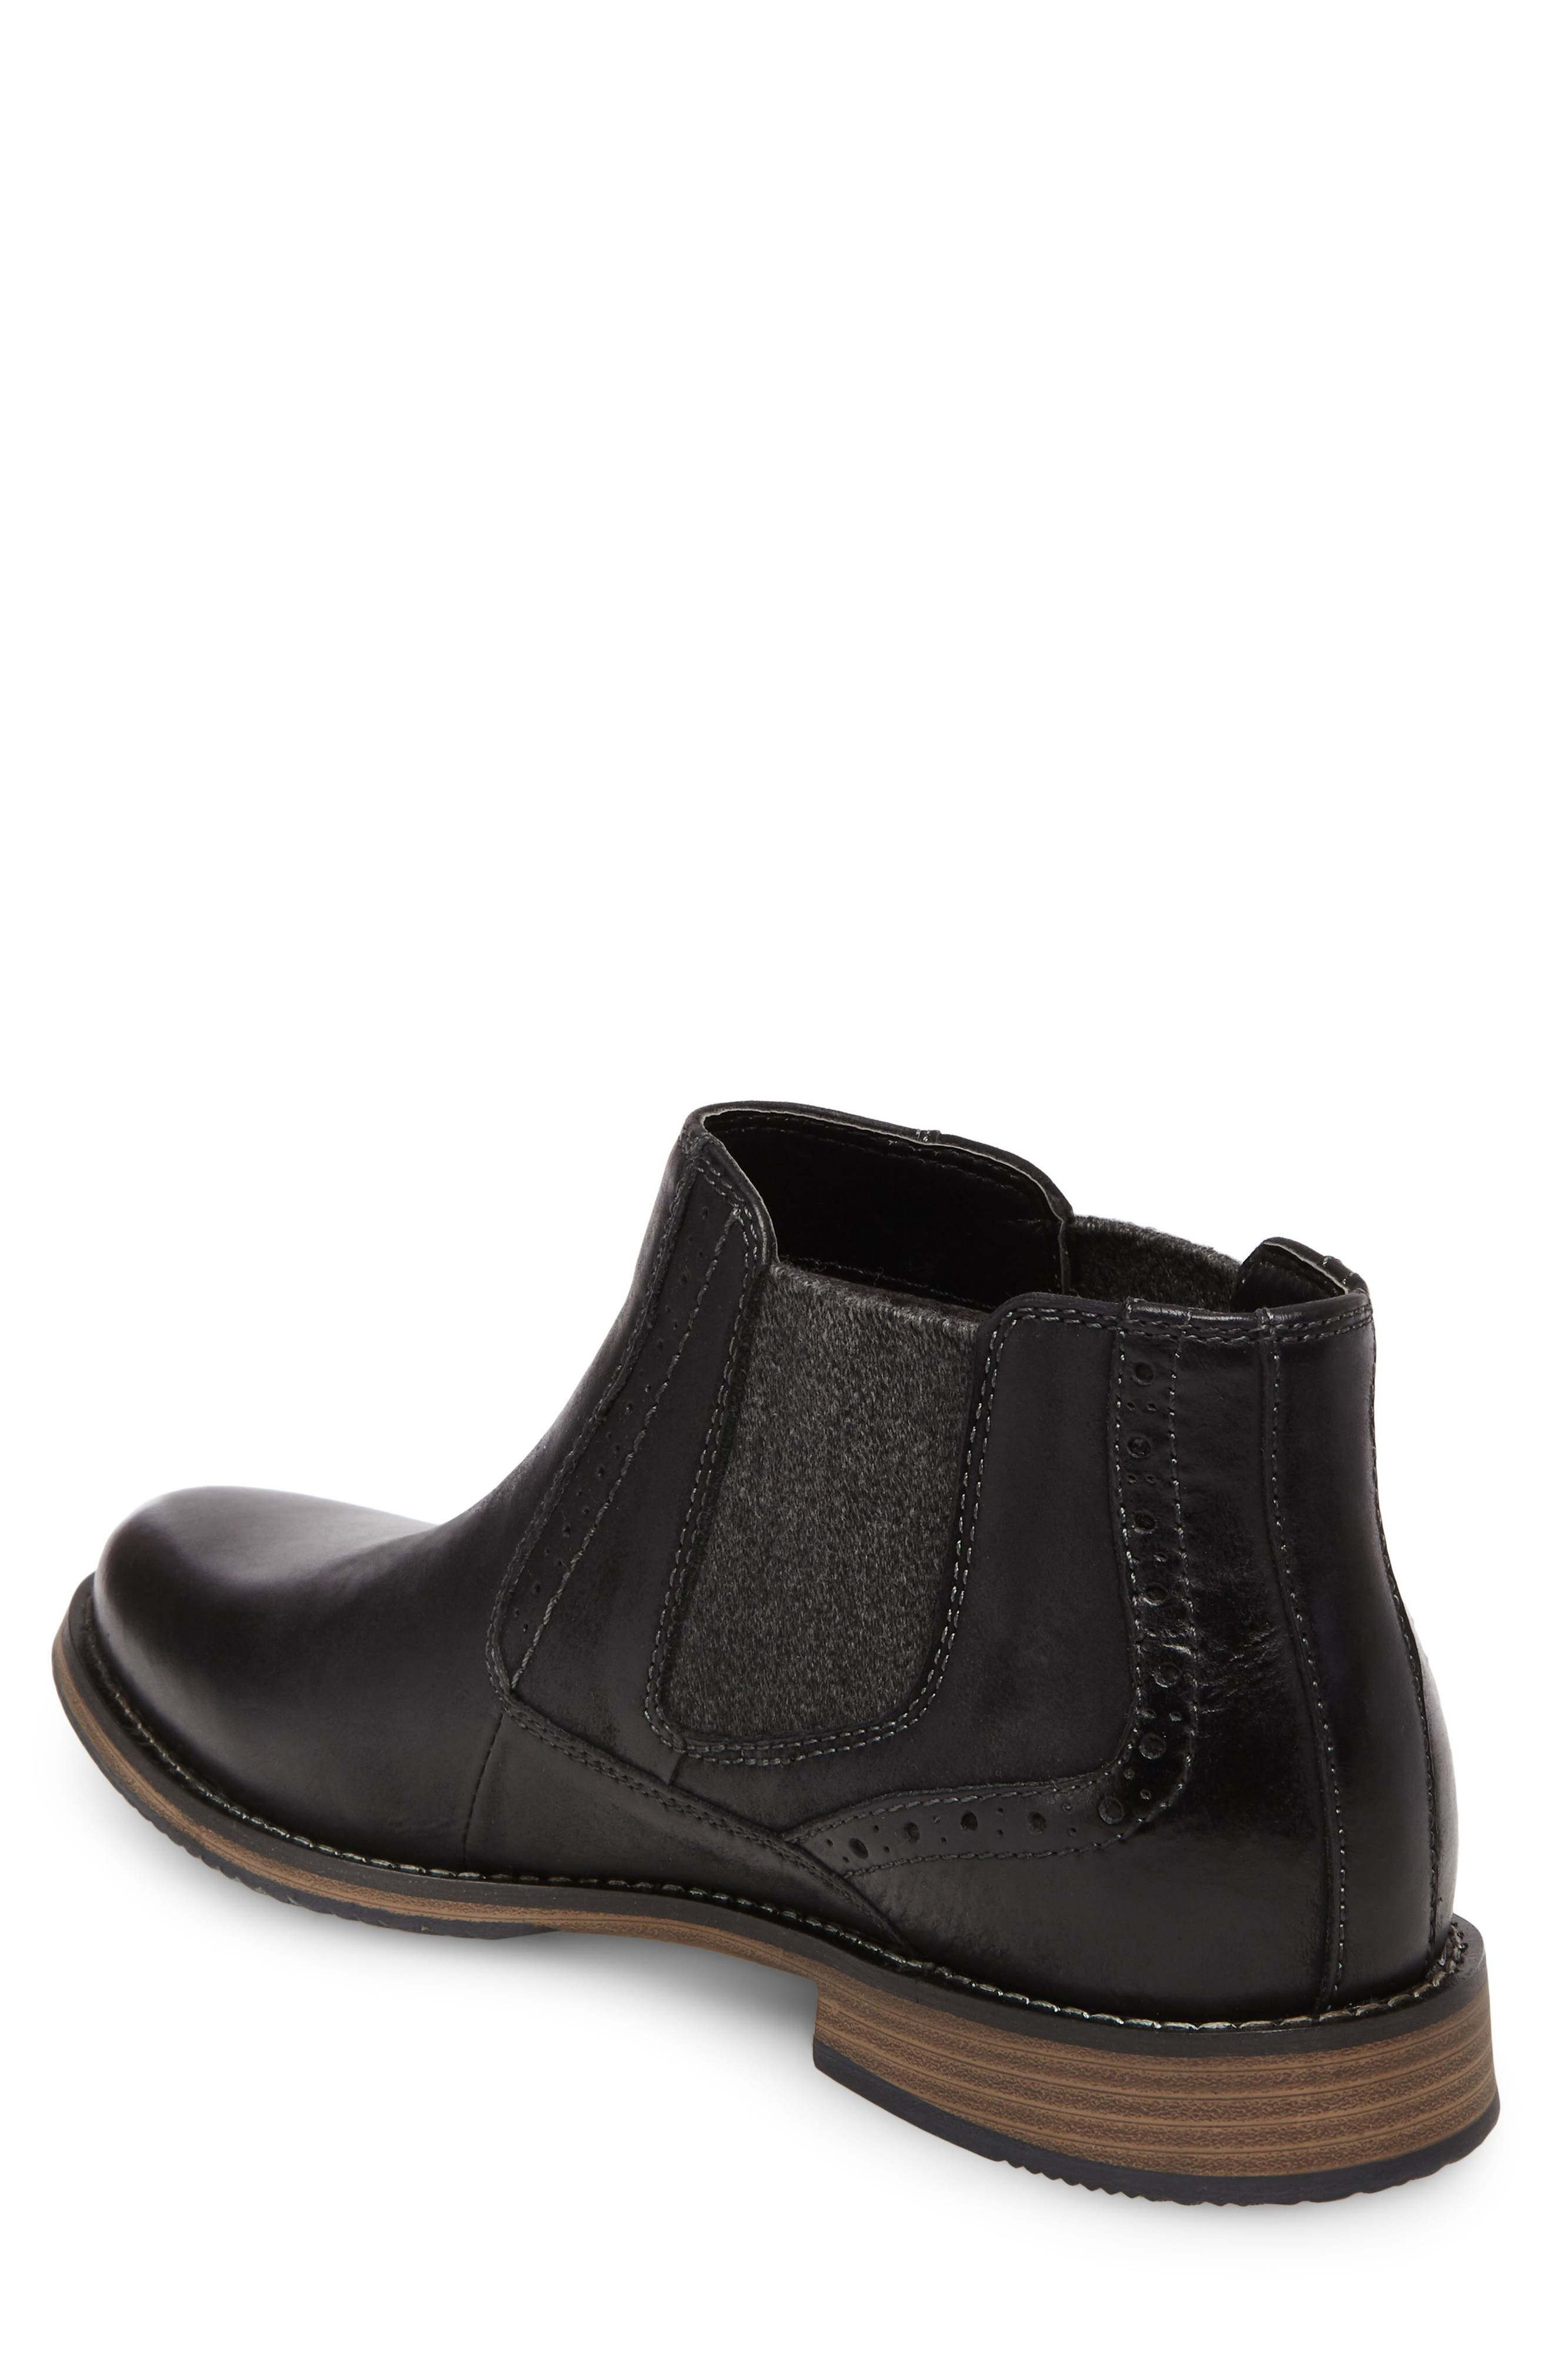 Paxton Chelsea Boot,                             Alternate thumbnail 2, color,                             001